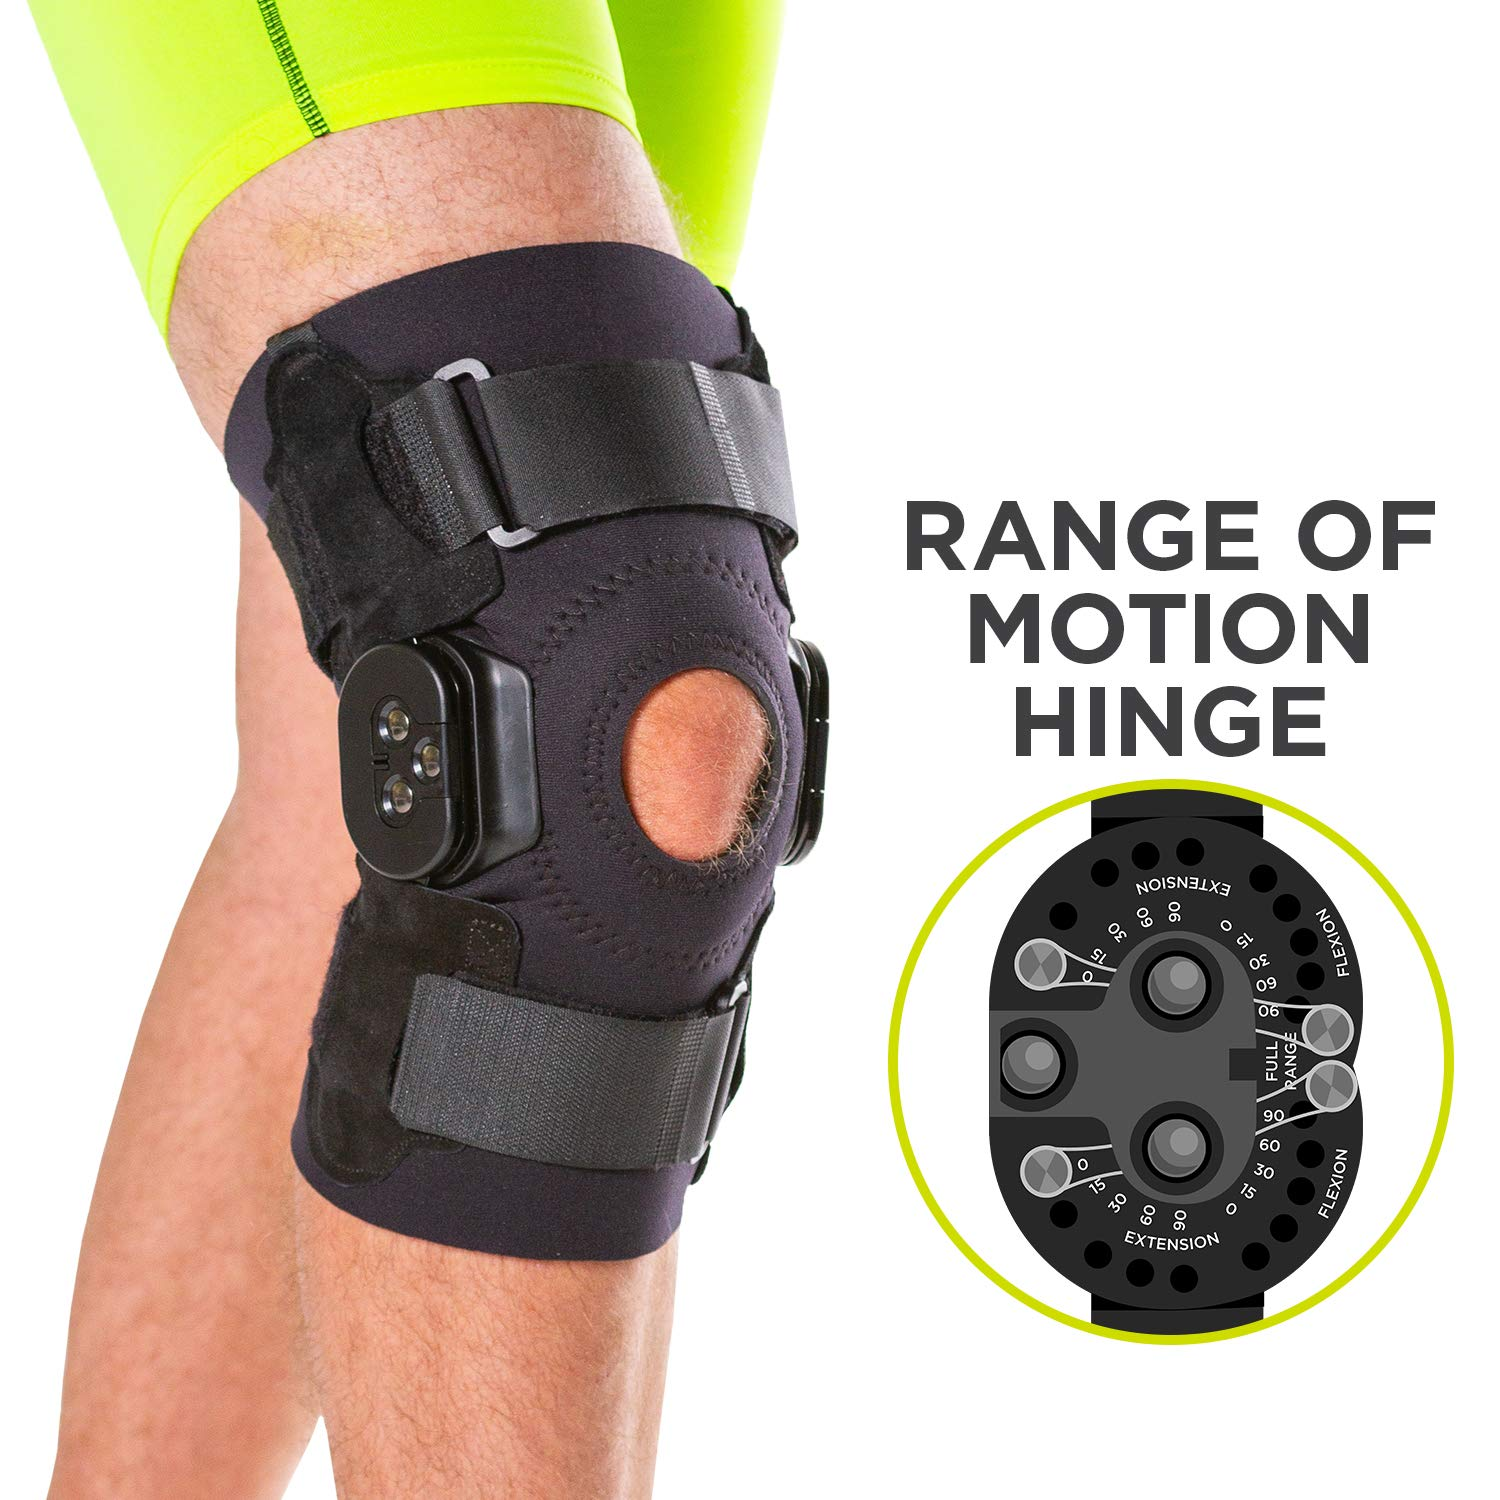 BraceAbility Torn Meniscus ROM Knee Brace | Hinged Post Surgery Support with Flexion/Extension Control for Hyperextension & Locking Treatment, Ligament (PCL/ACL) Tears, Osteoarthritis (Large) by BraceAbility (Image #1)